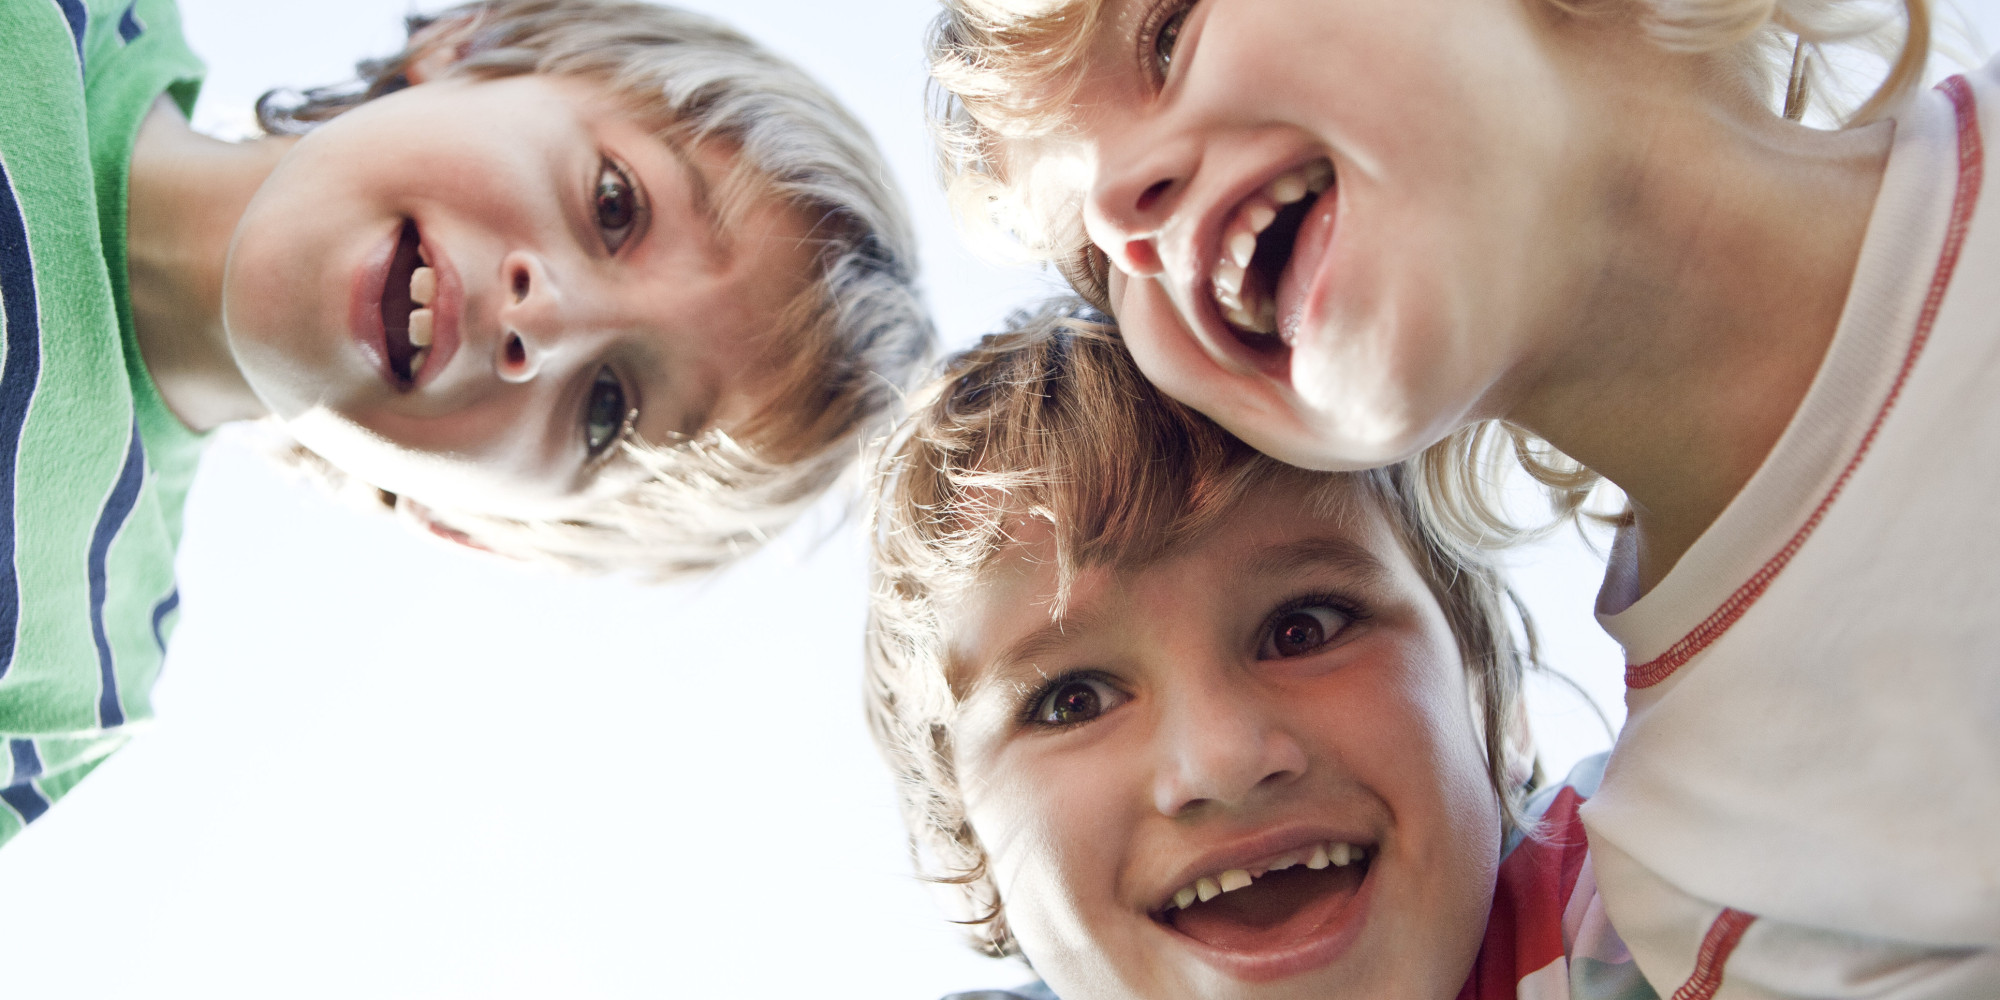 3 Steps To Raising A Happy Child | HuffPost